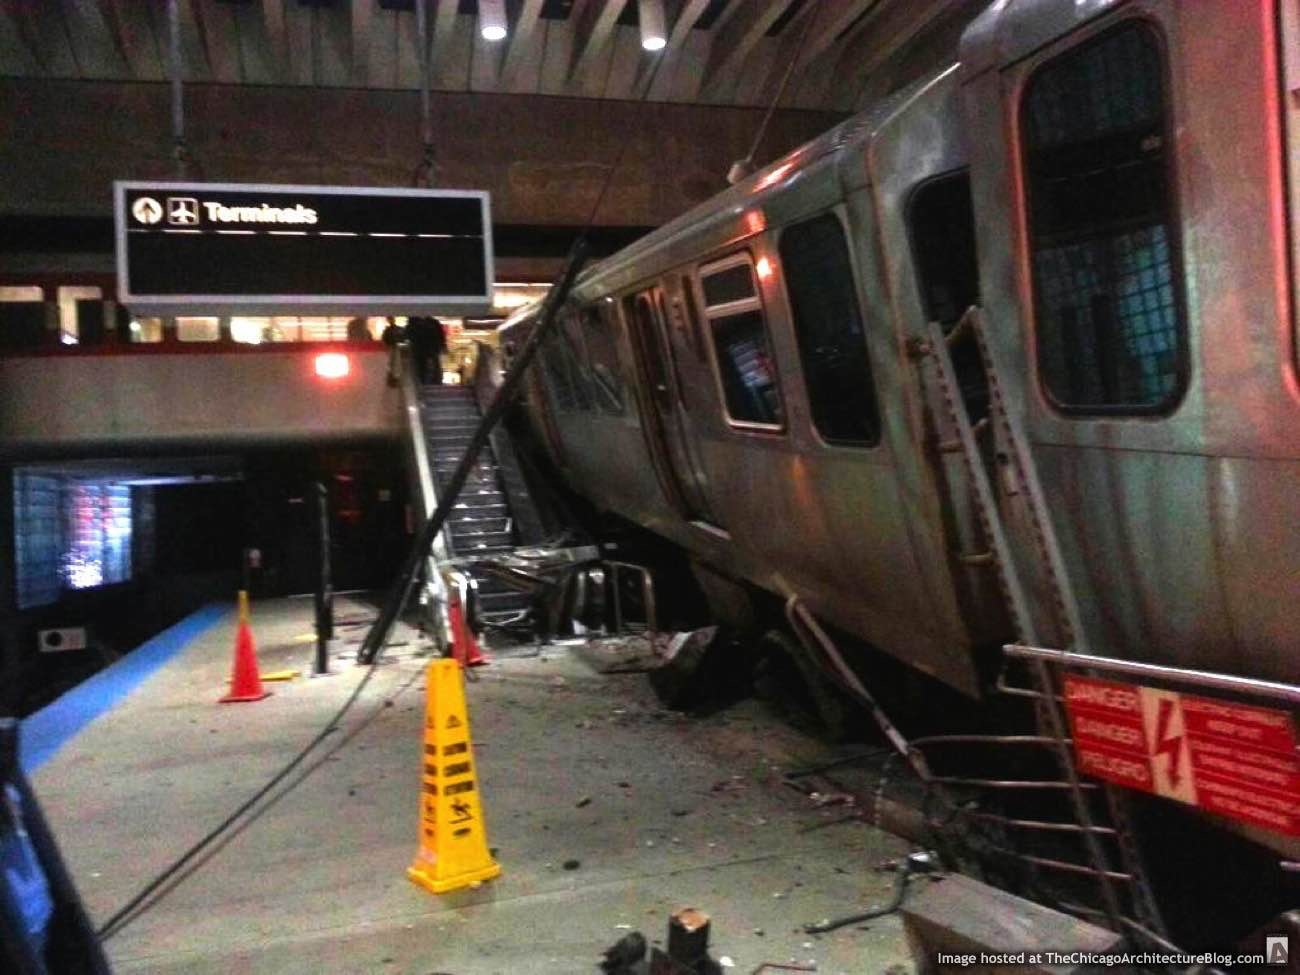 CTA Blue Line O'Hare Station crash